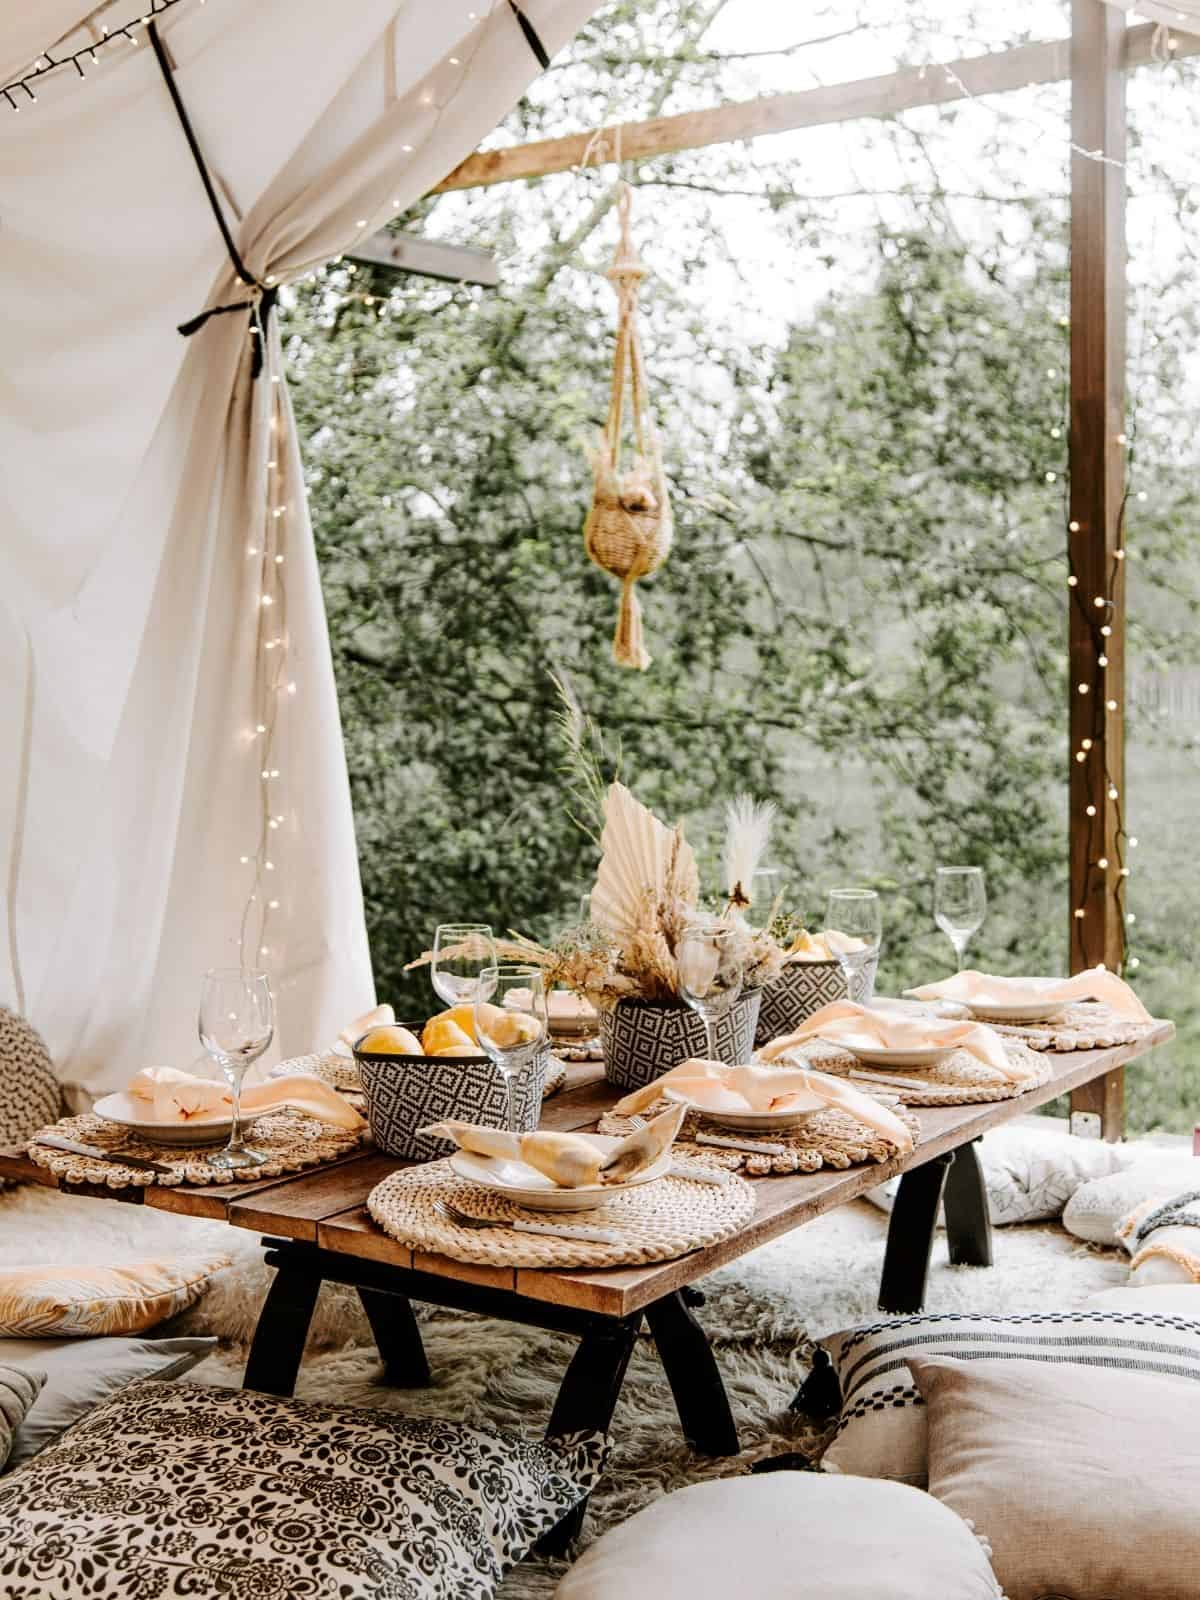 glamping tent with table for food